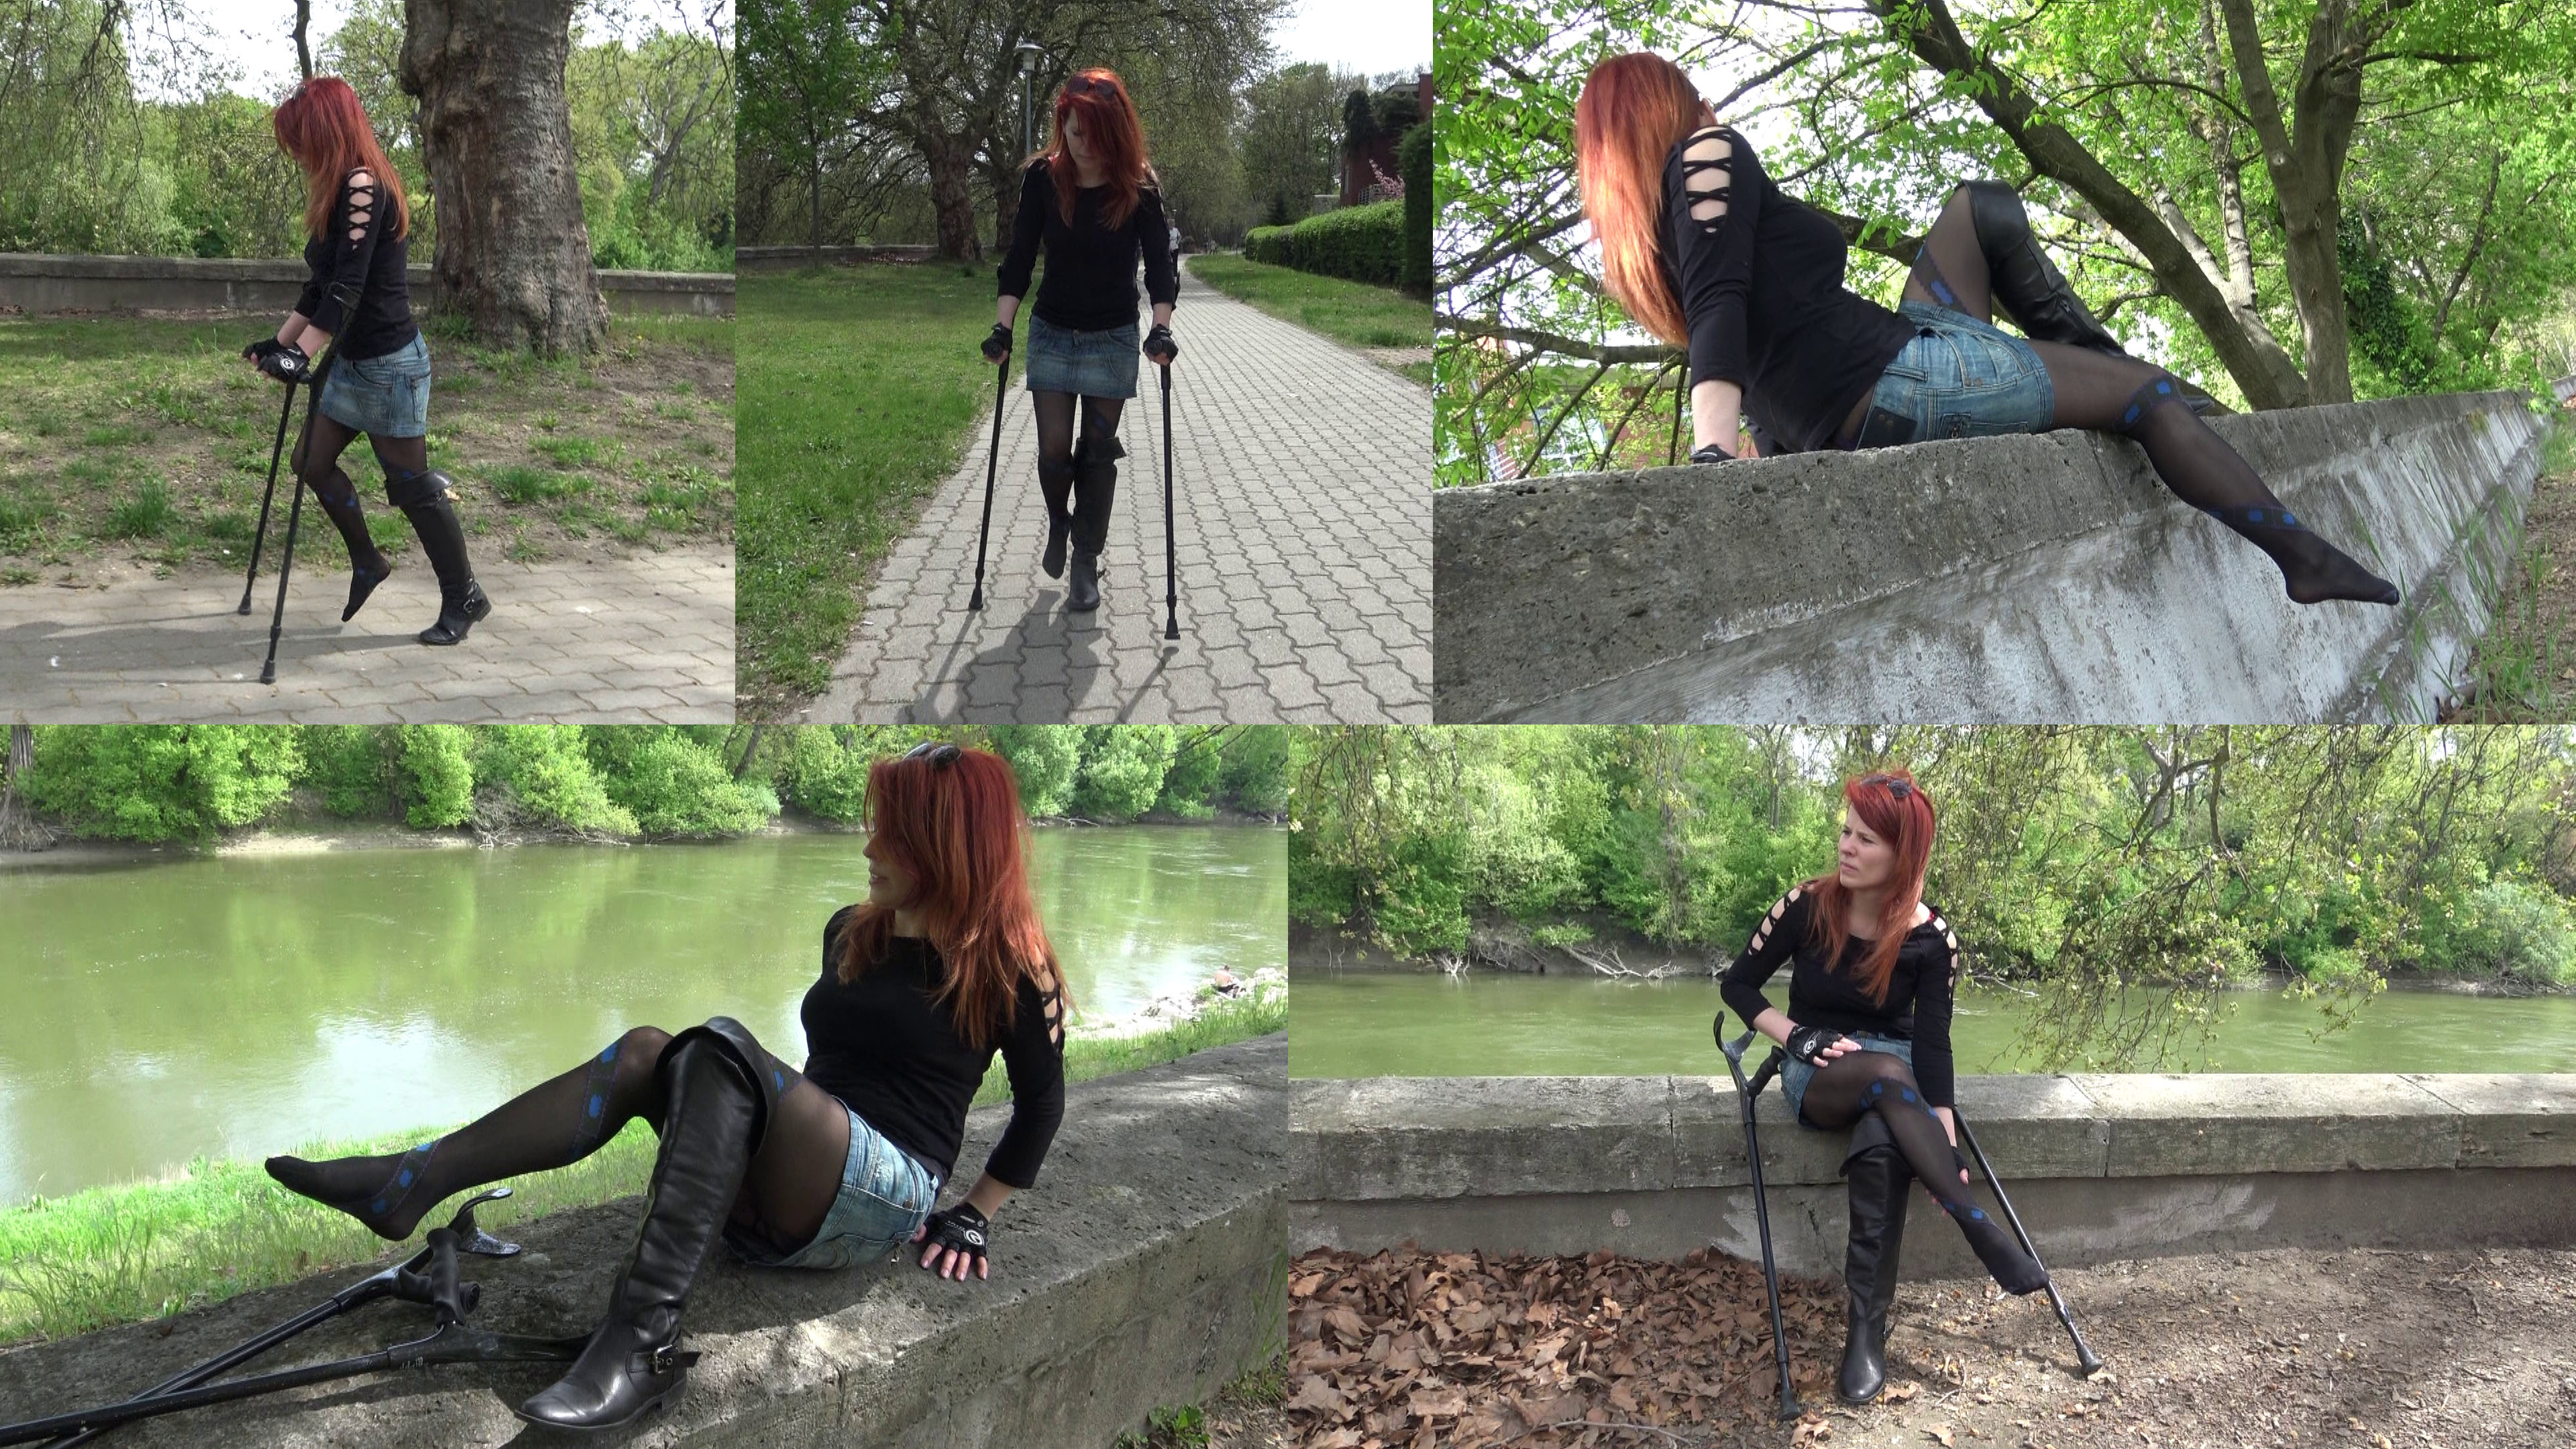 Norina - Norina is on her way to a party. She is on crutches, we follow her journey.